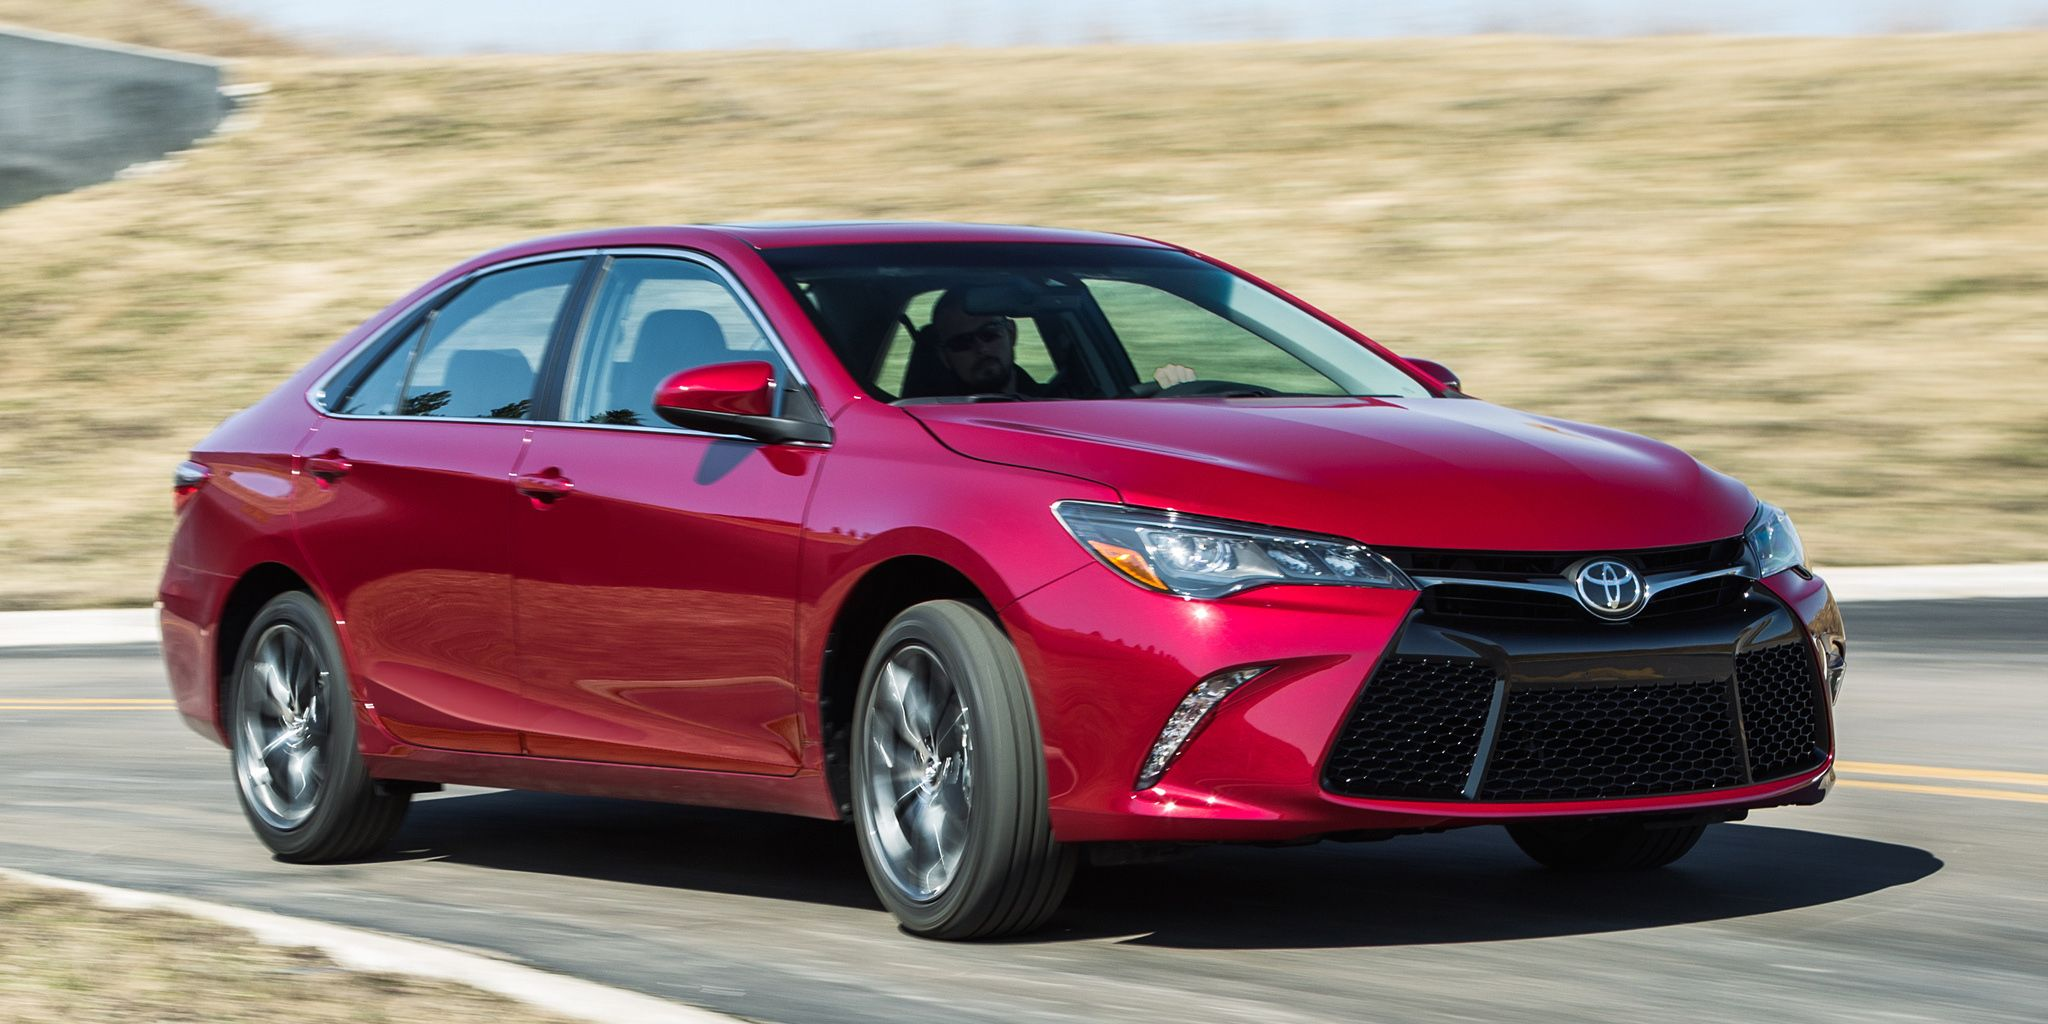 "<p>Other than the Toyota Prius, there are few cars enthusiasts love to rag on more than the Toyota Camry. Underneath its newly aggressive styling, it's comfortable and reliable but bland. No one's going to argue that the Camry has been turned into a sports sedan, but with a V6, you also can't call it slow. Put your foot down, and <a href=""http://www.caranddriver.com/toyota/camry"" target=""_blank"">you'll knock the socks off</a> of more than a few cars on the road.</p>"